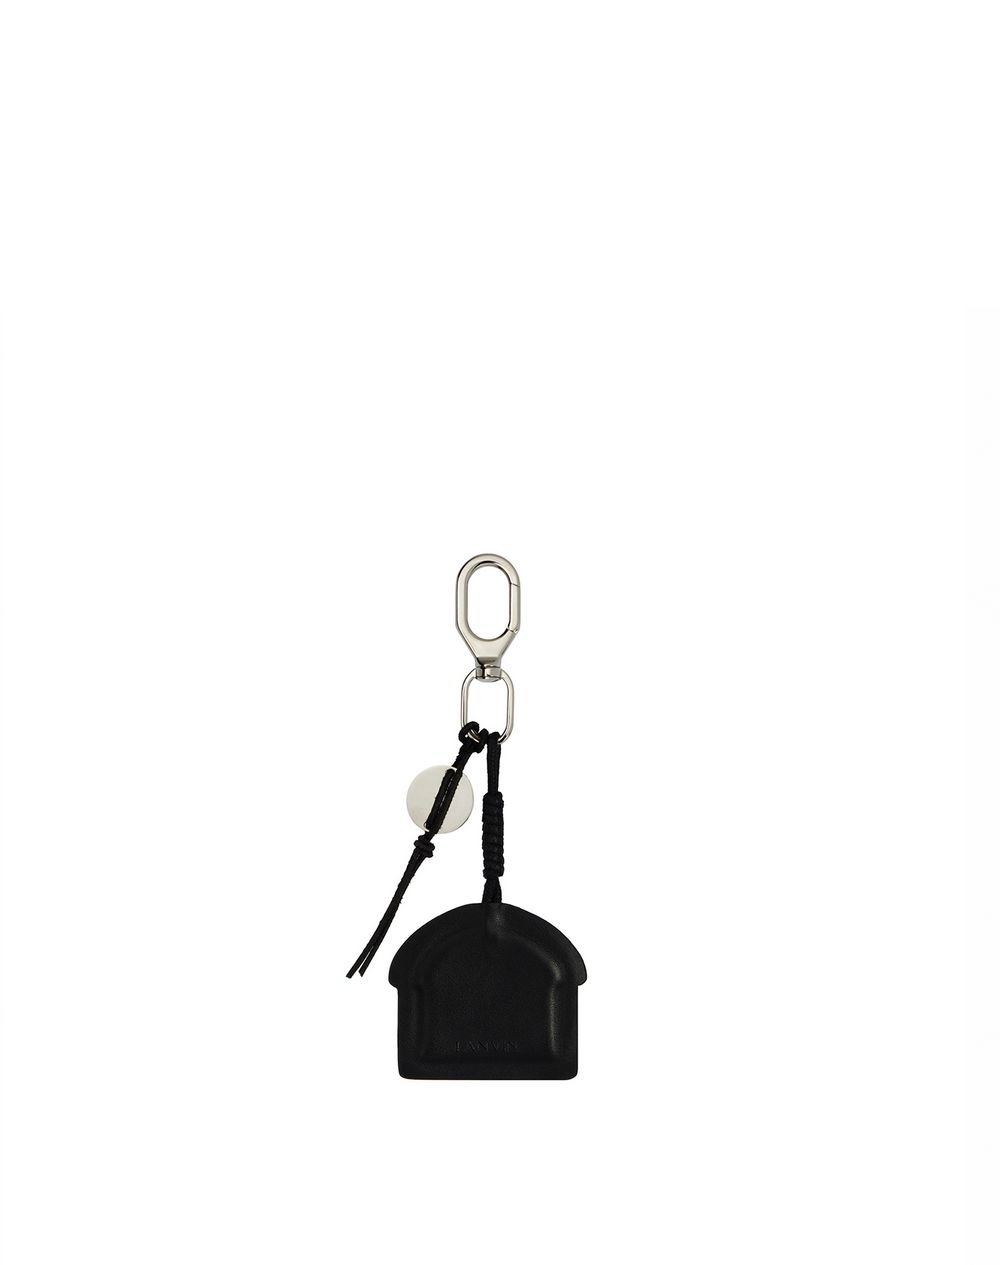 BABAR KEY RING - Lanvin